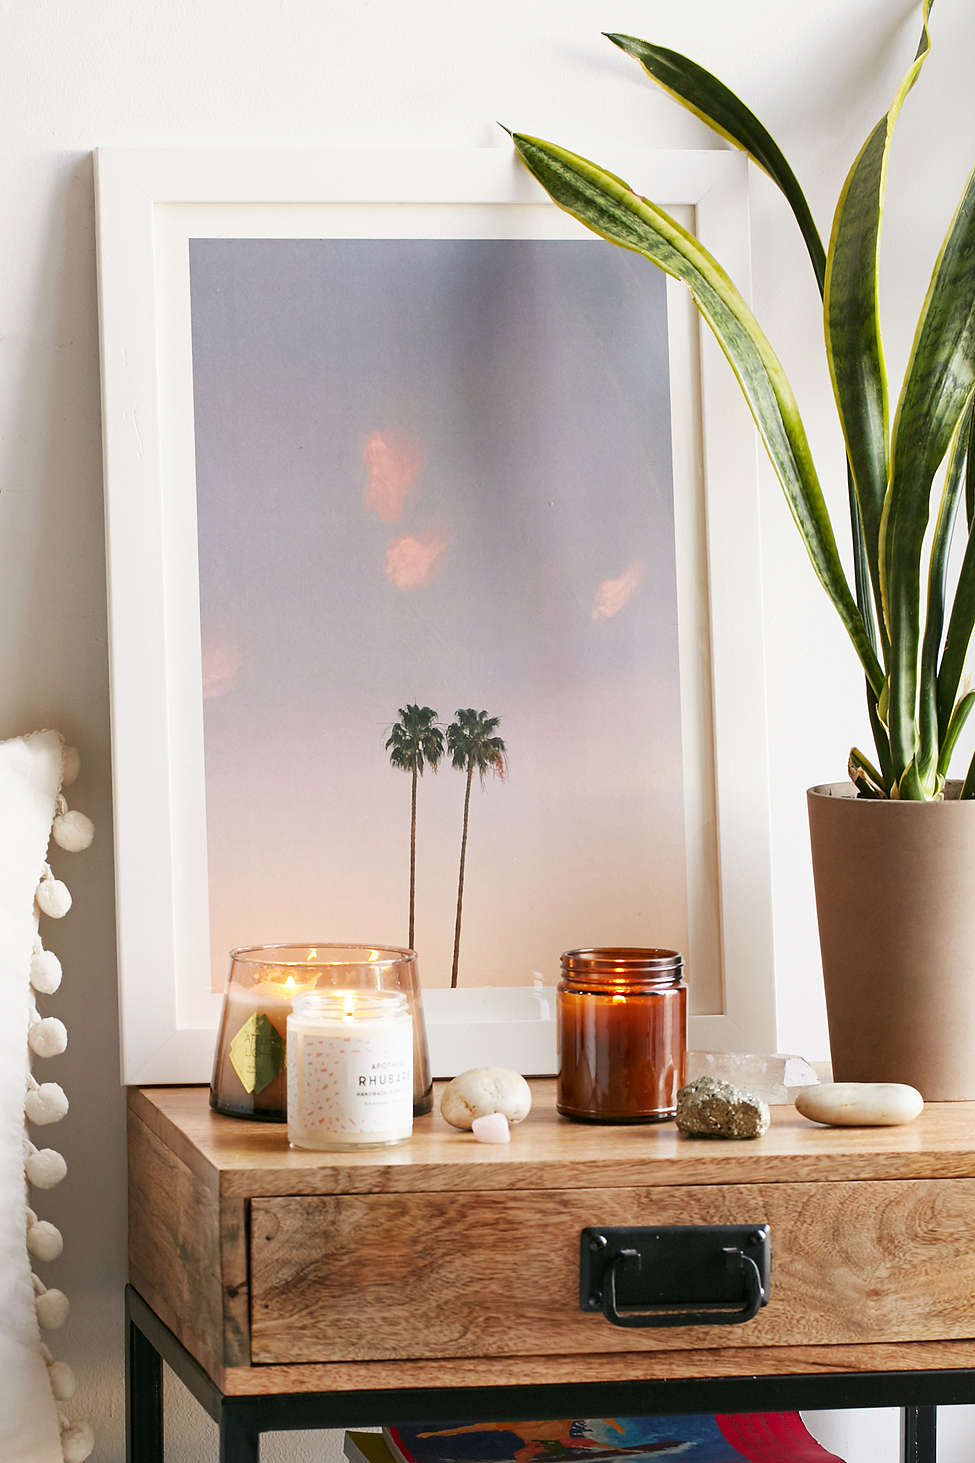 Right art prints and indoor plants can easily give the modern bedroom tropical overtones